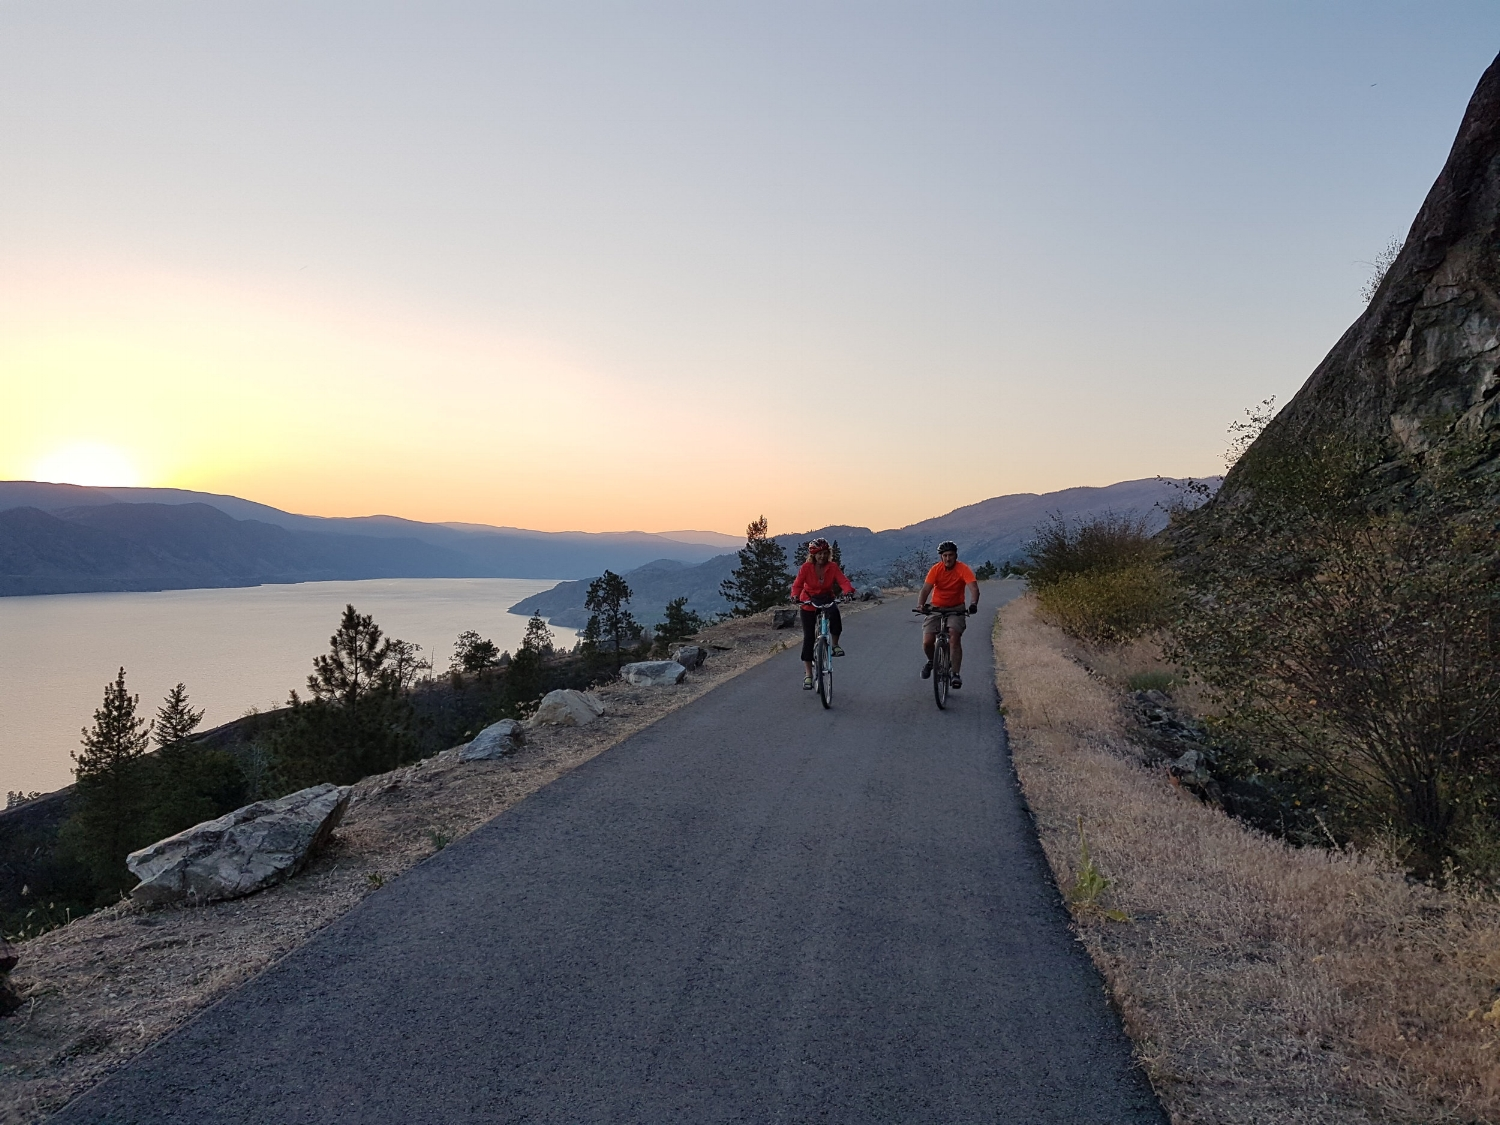 Cycling along Okanagan Lake on our Okanagan bike tour